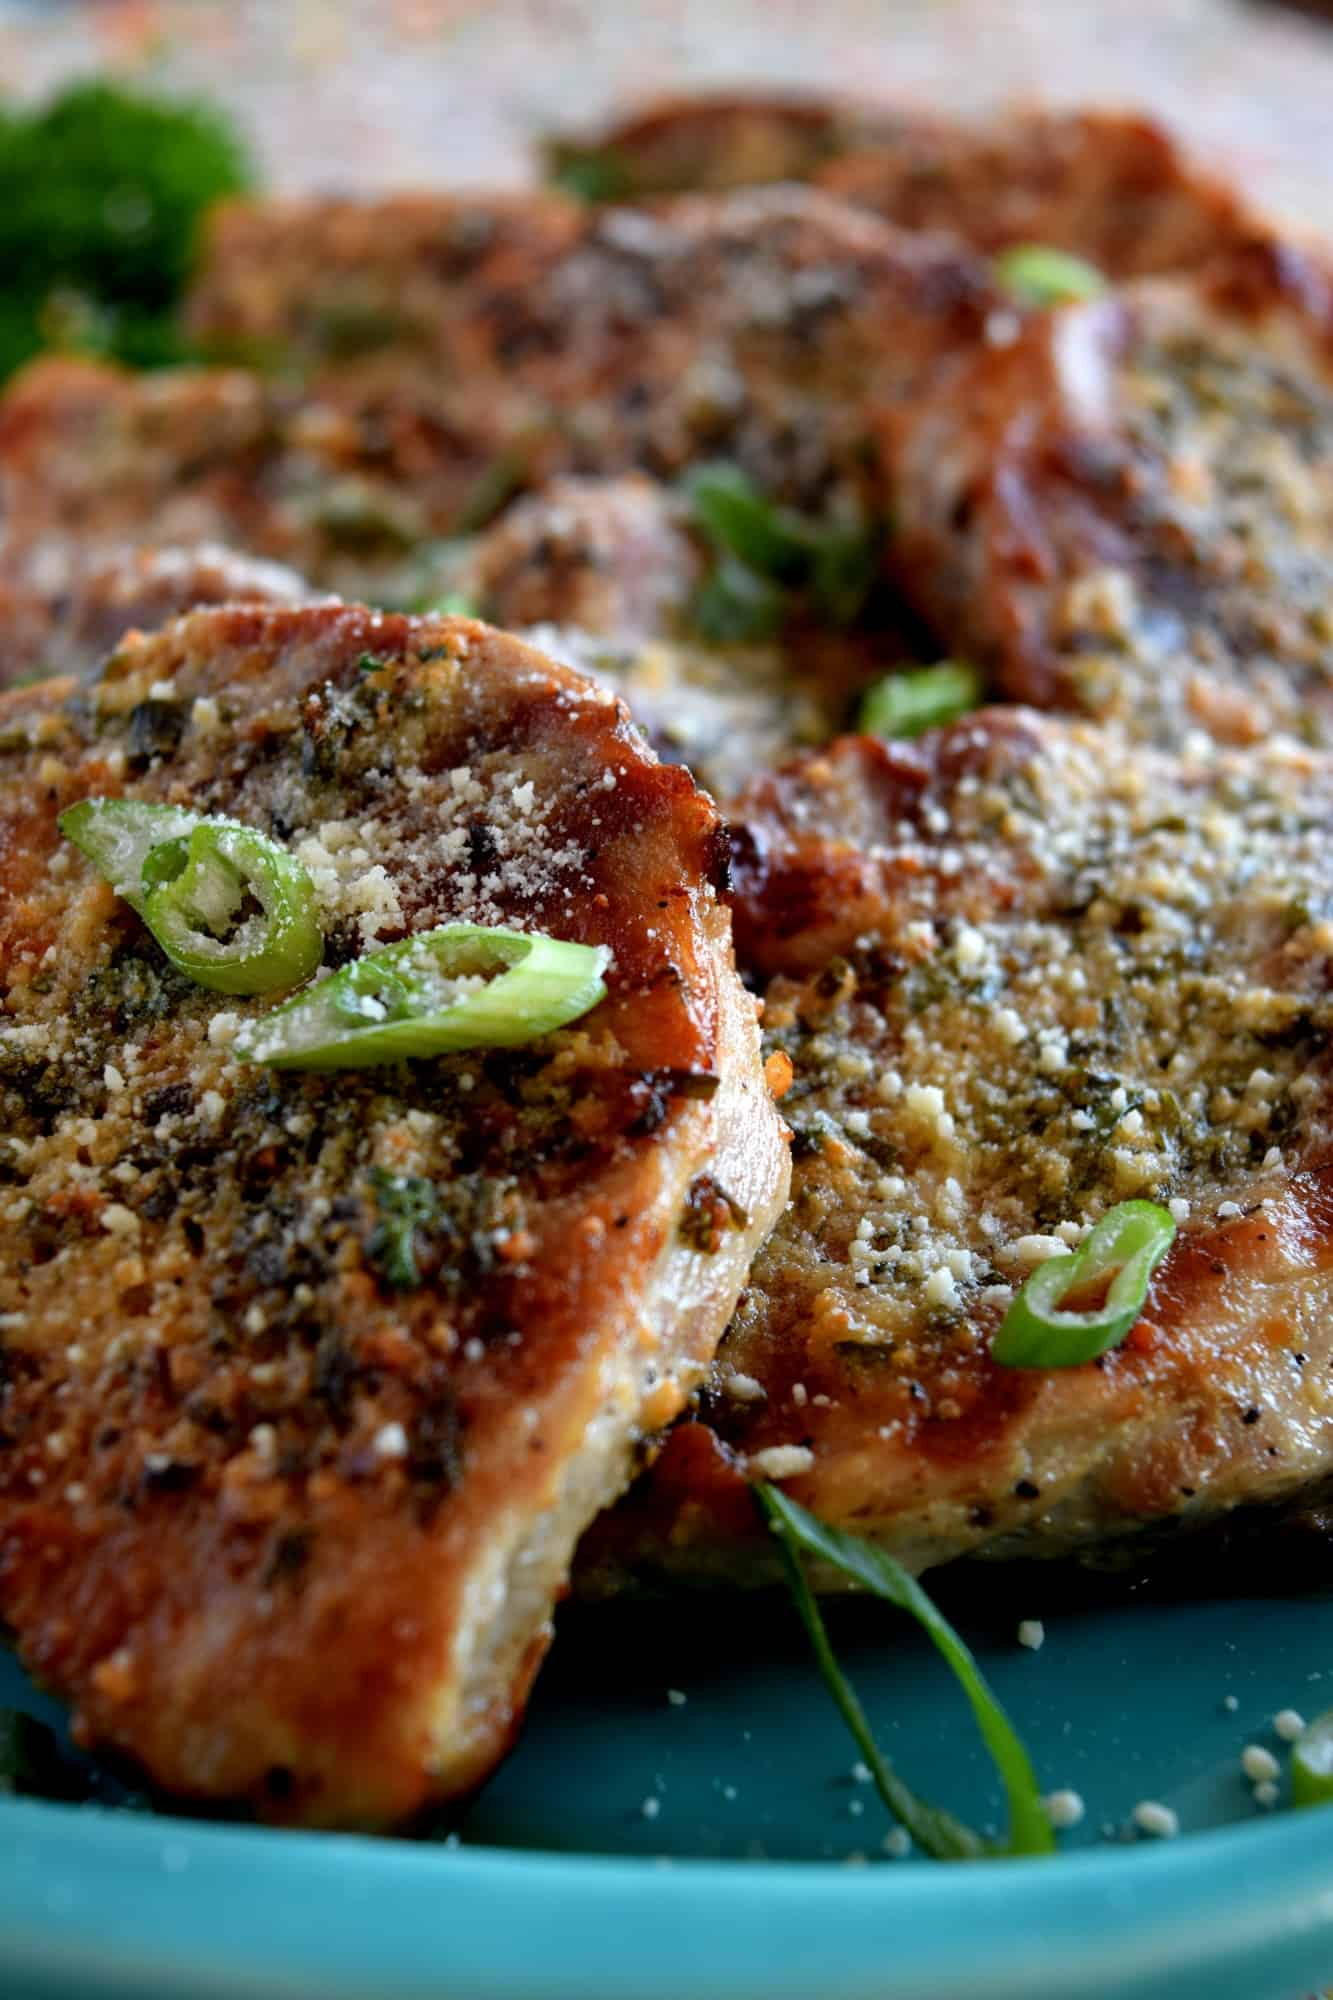 Garlicky butter chive parmesan pork chops lord byrons kitchen the grilling portion of this dish is optional i tend to like flat cuts of meat like steak and pork to have grill marks ccuart Choice Image